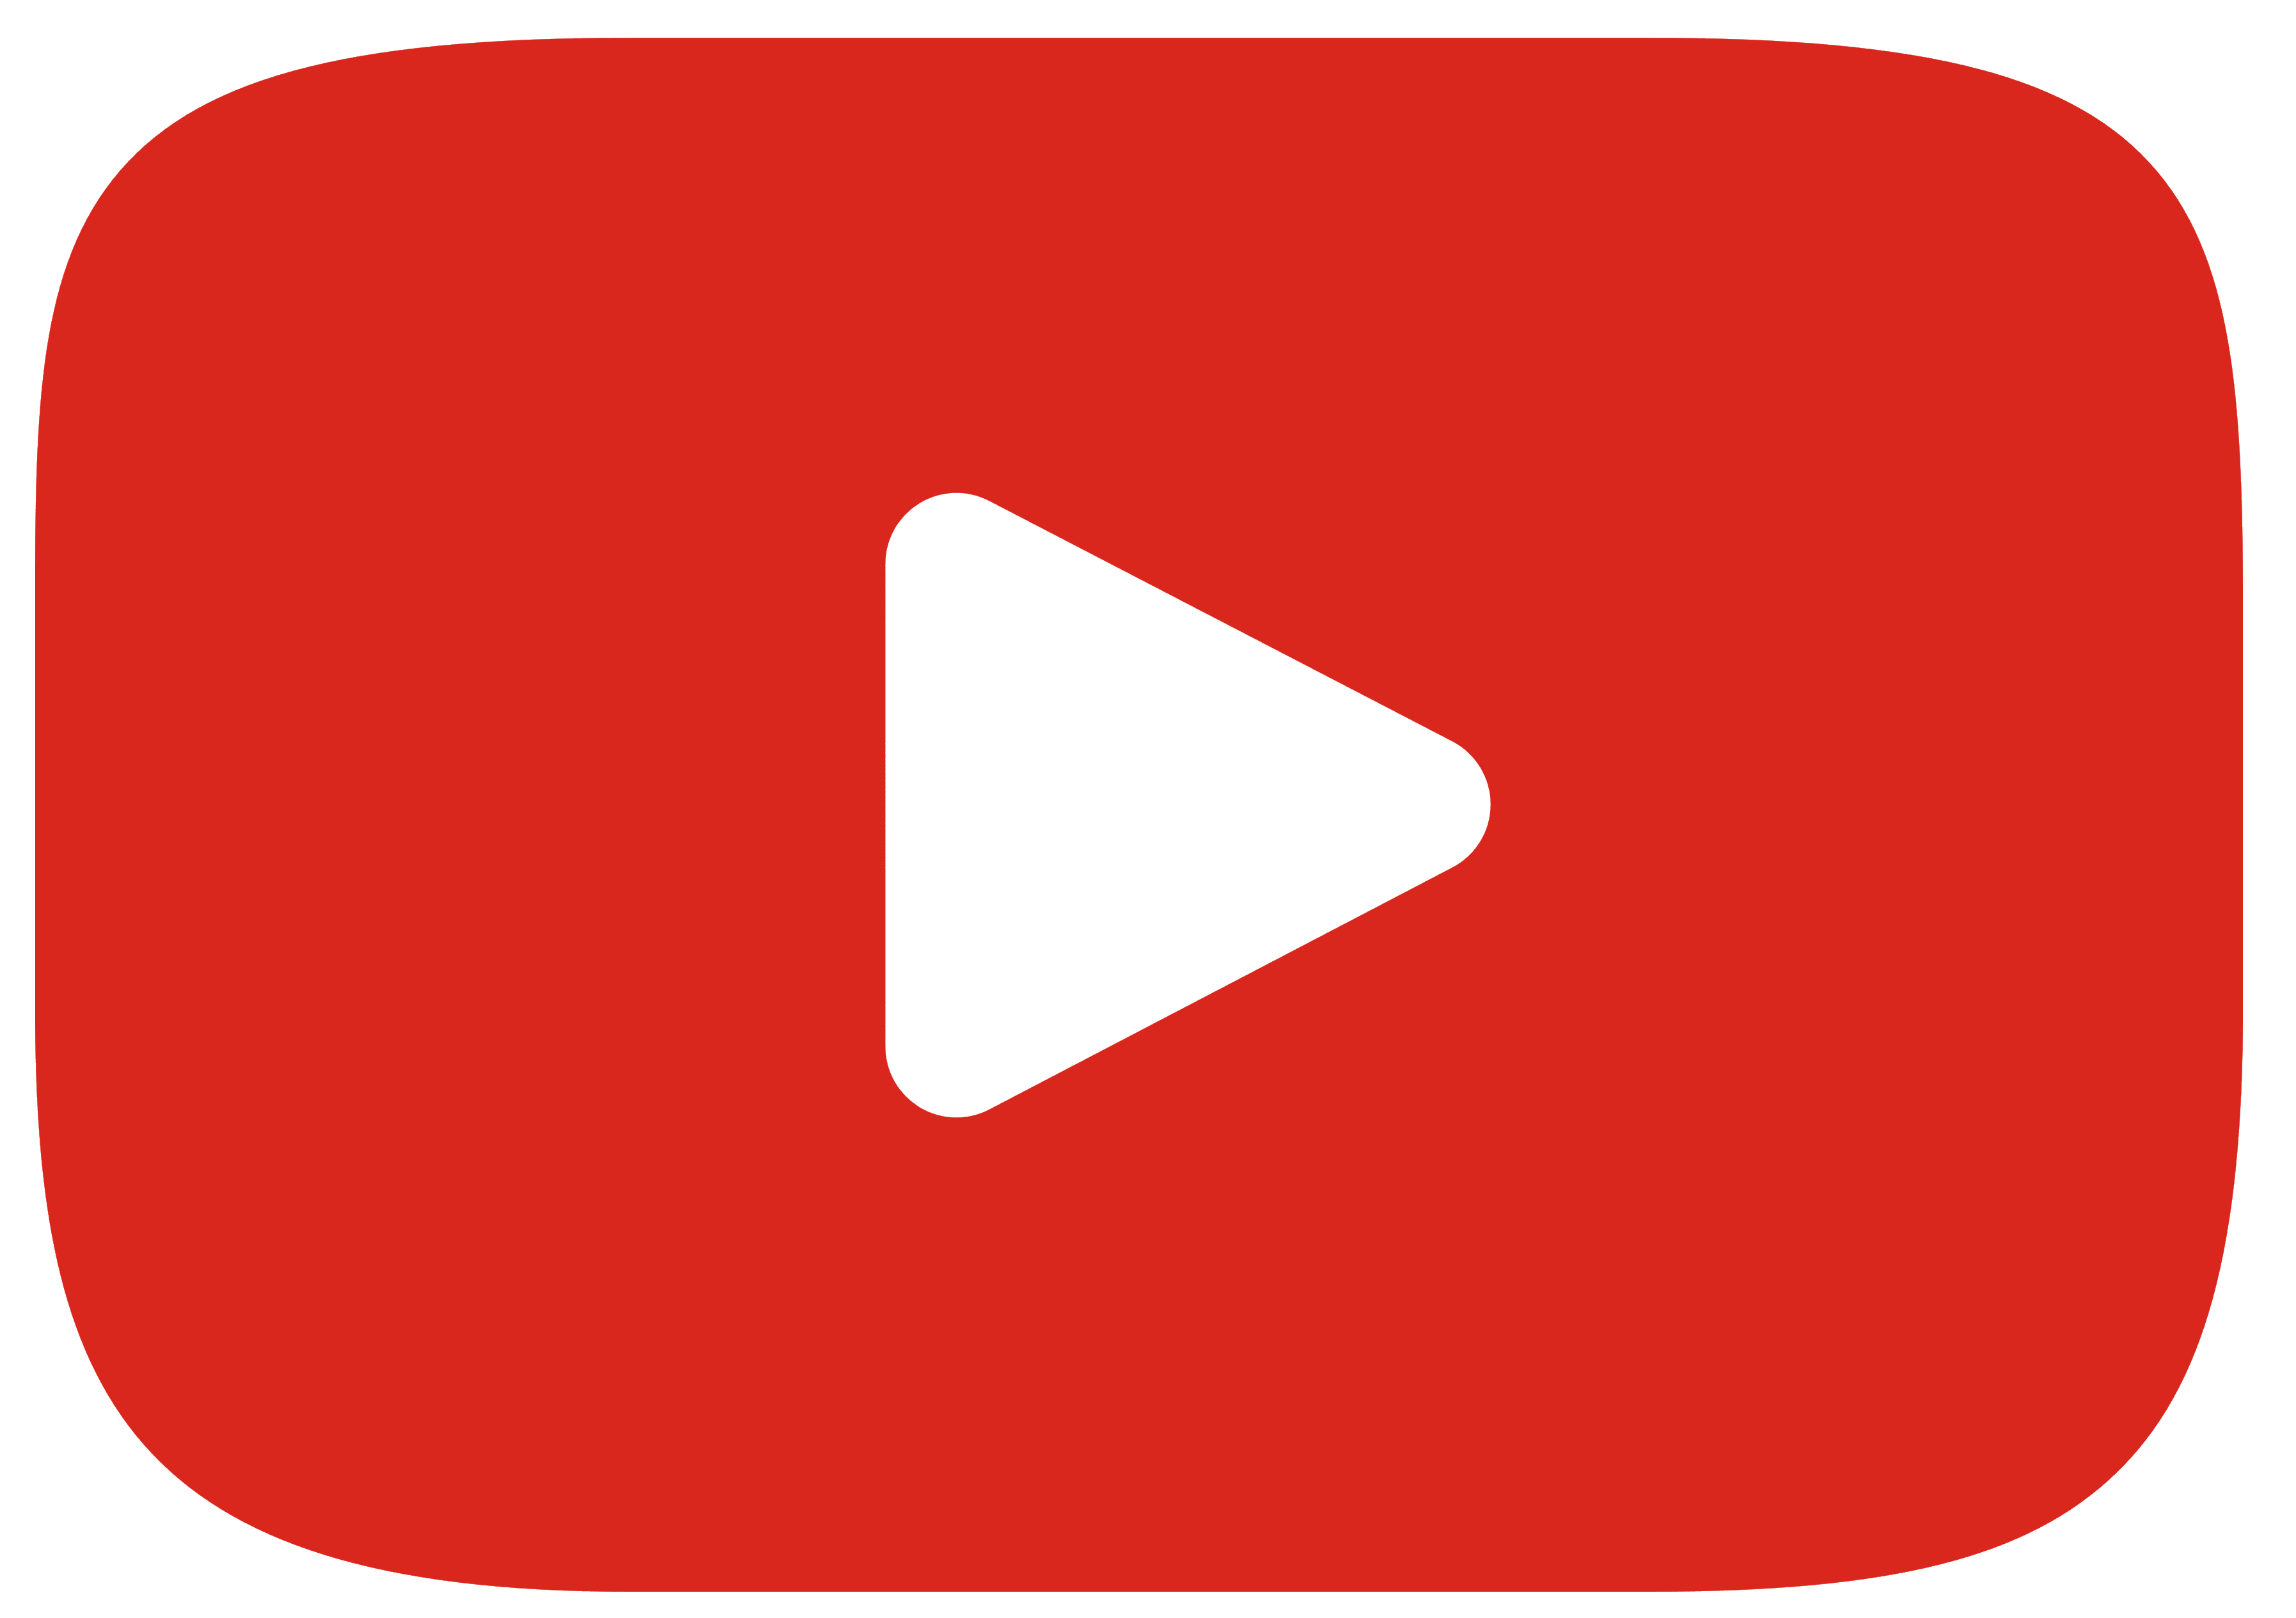 youtube play button transparent background 4